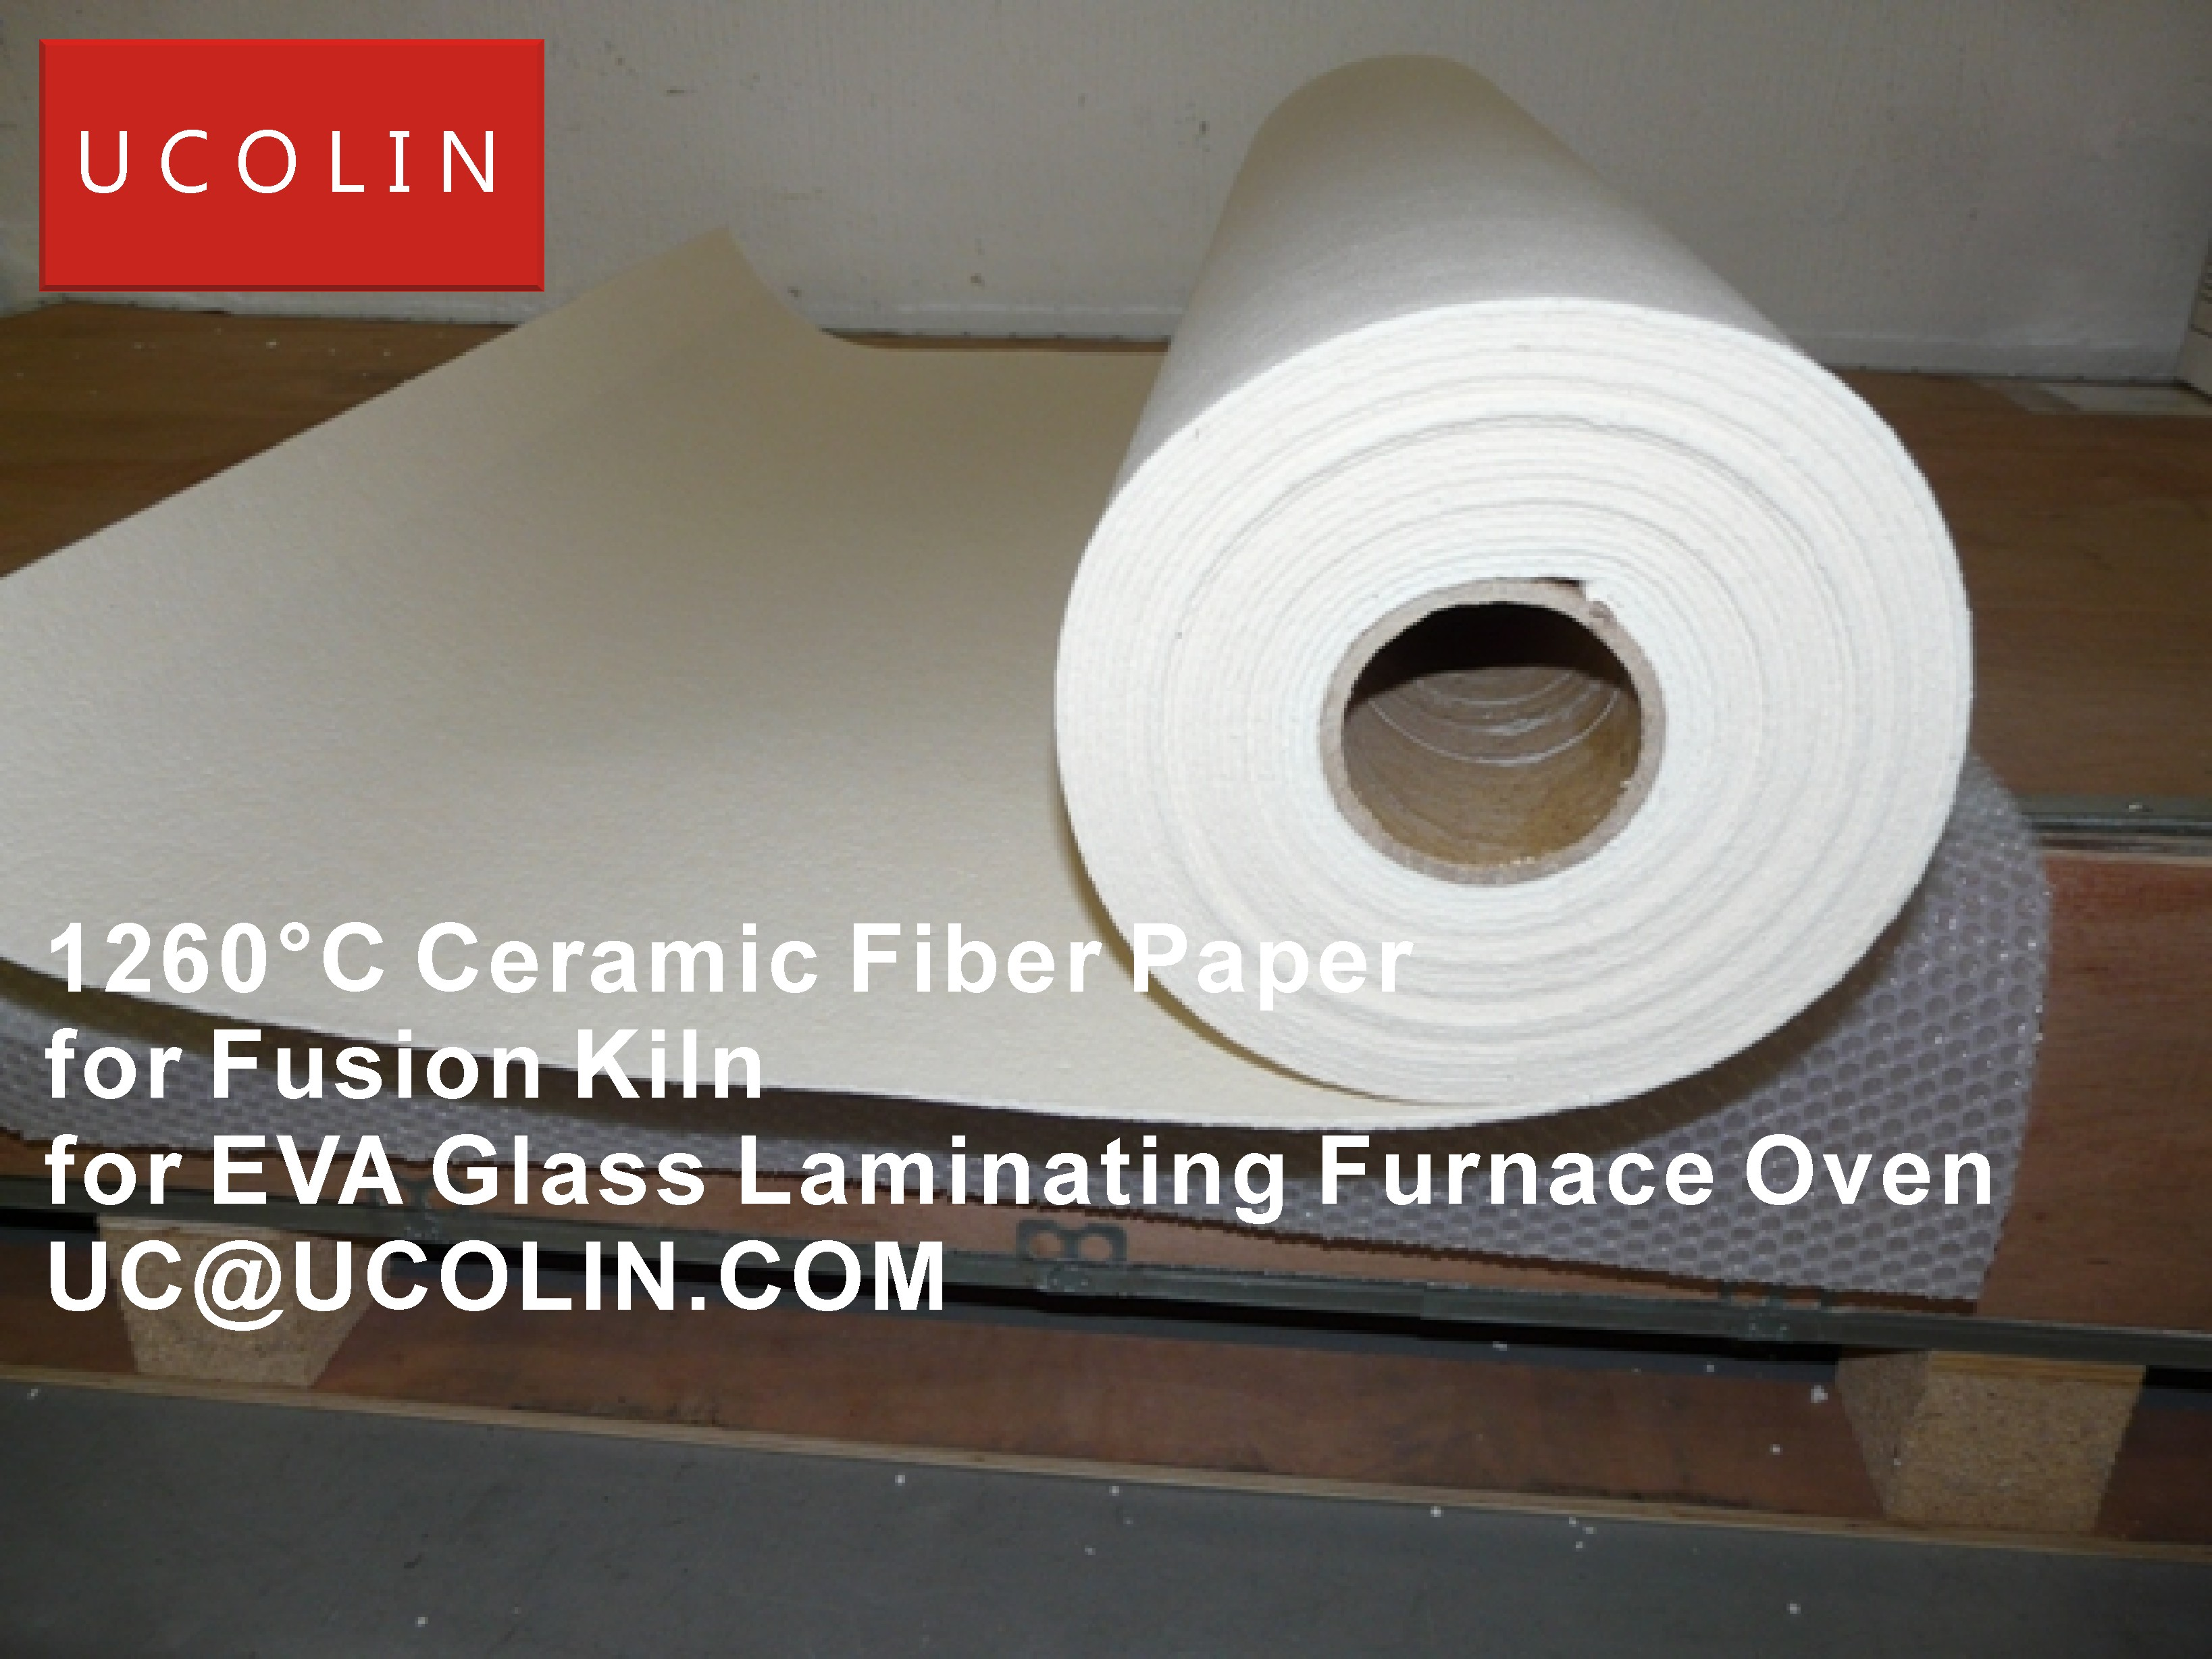 02-1260°C Ceramic Fiber Paper for Fusion Kiln